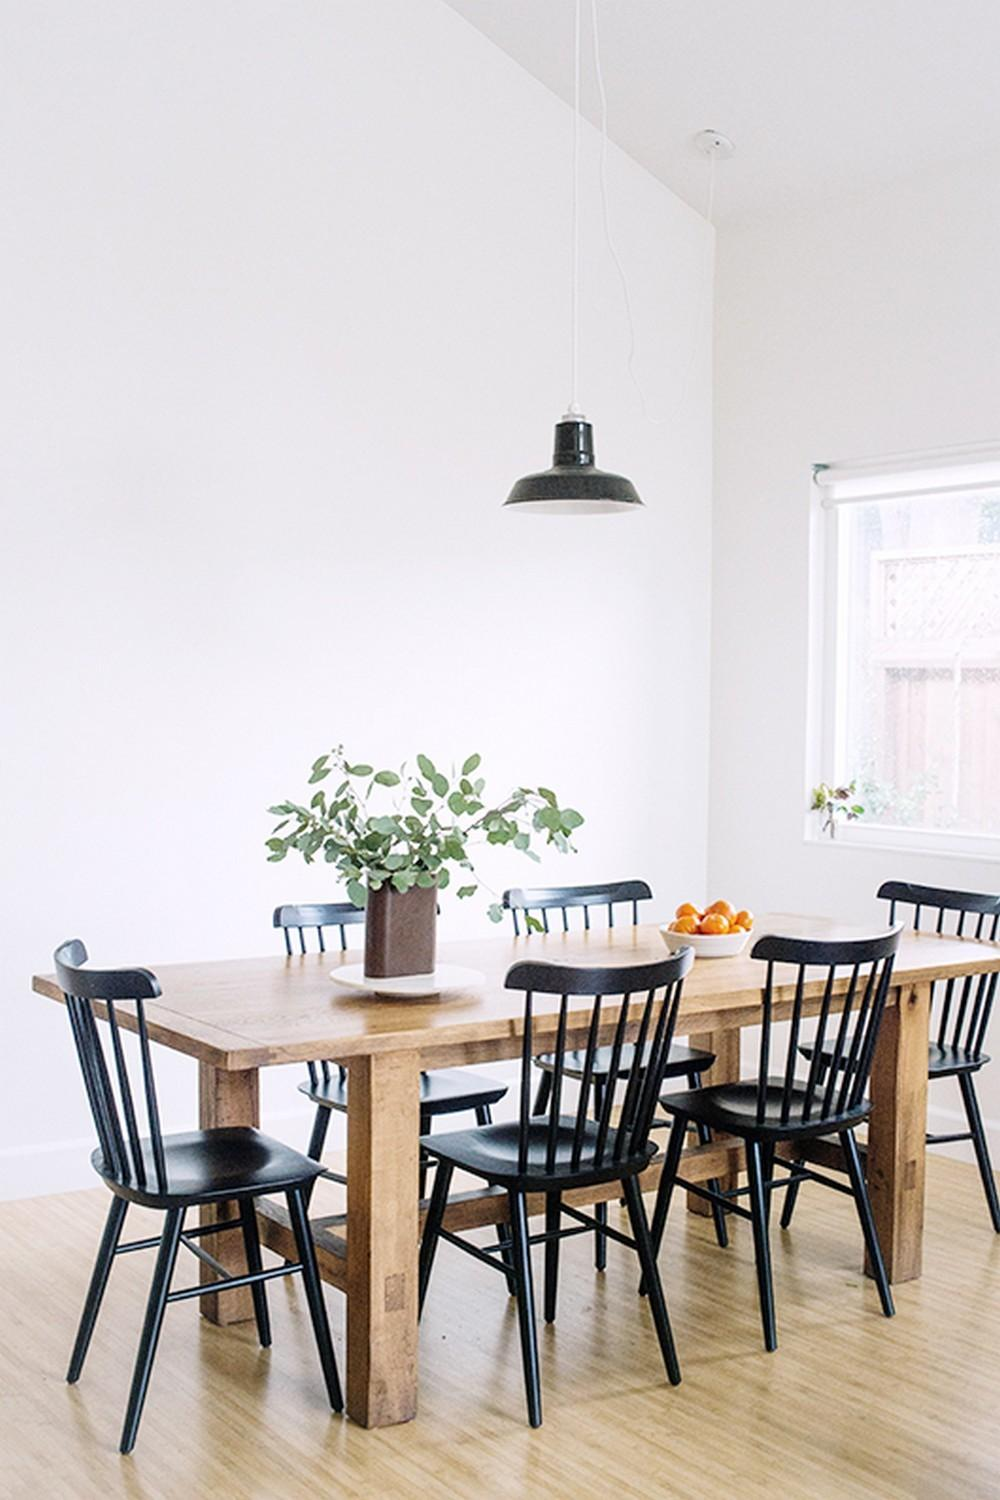 153 Awesome Diy Minimalist Table Dining Room Decorating